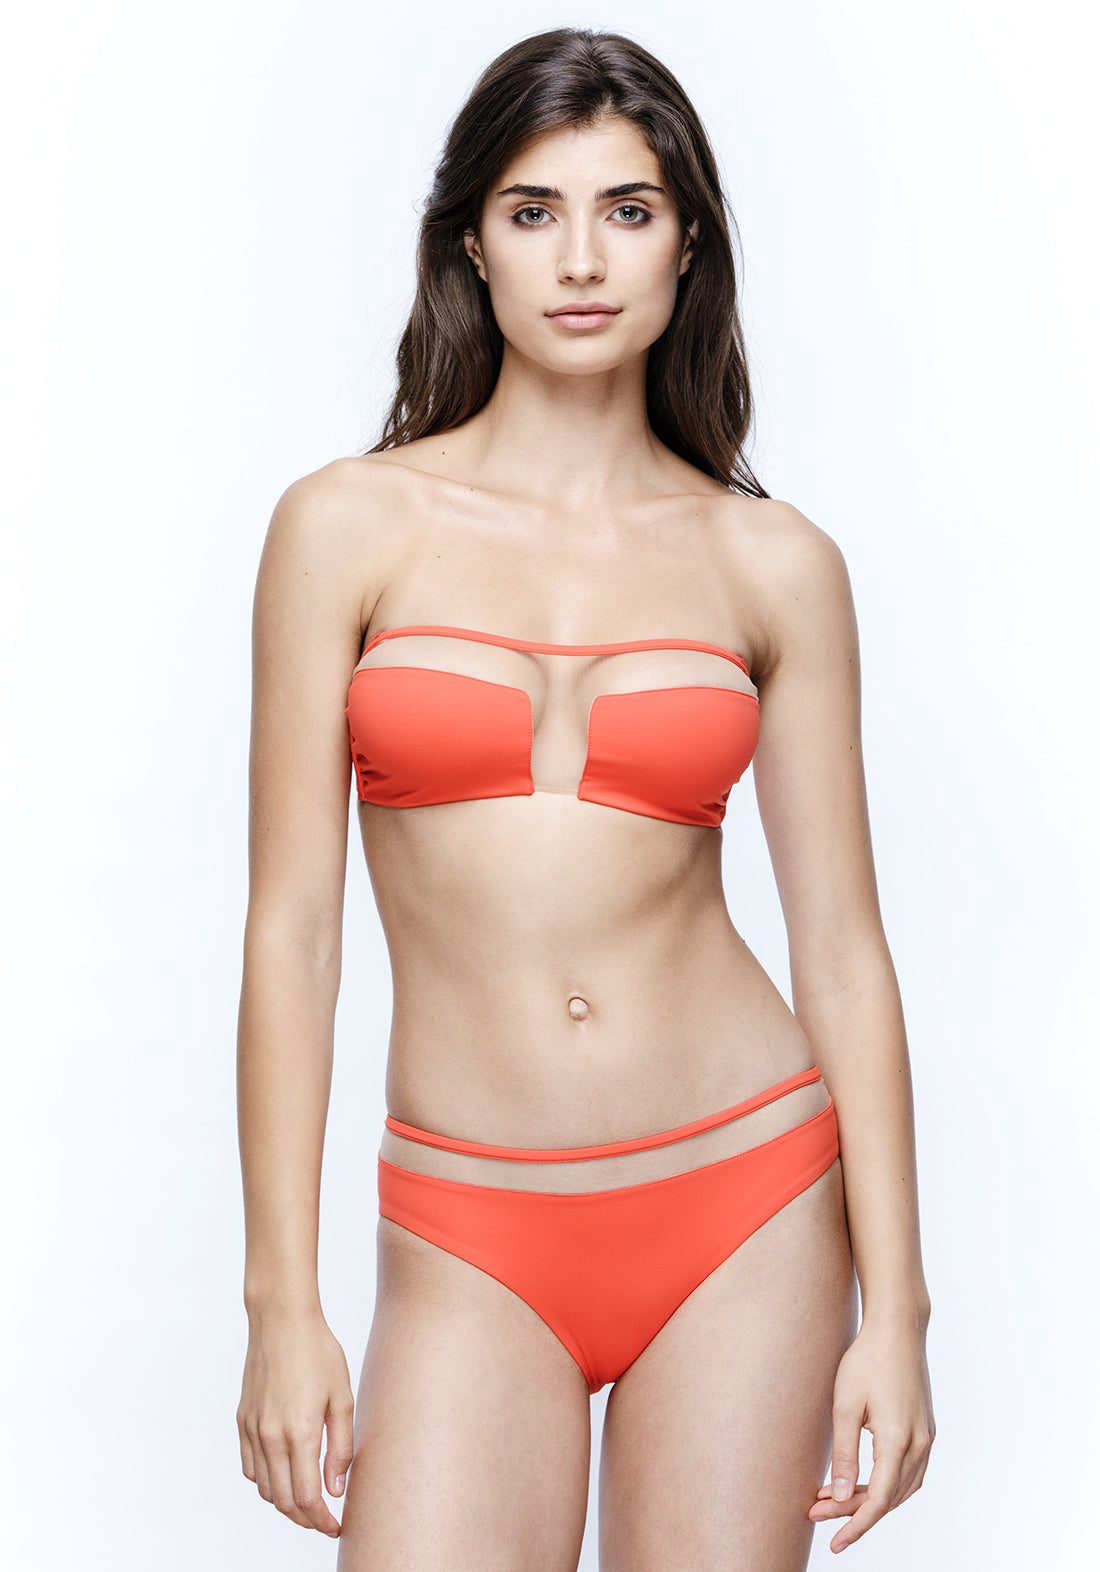 Sunrise in Seychelles Bandeau Bikini Top in Red Orange